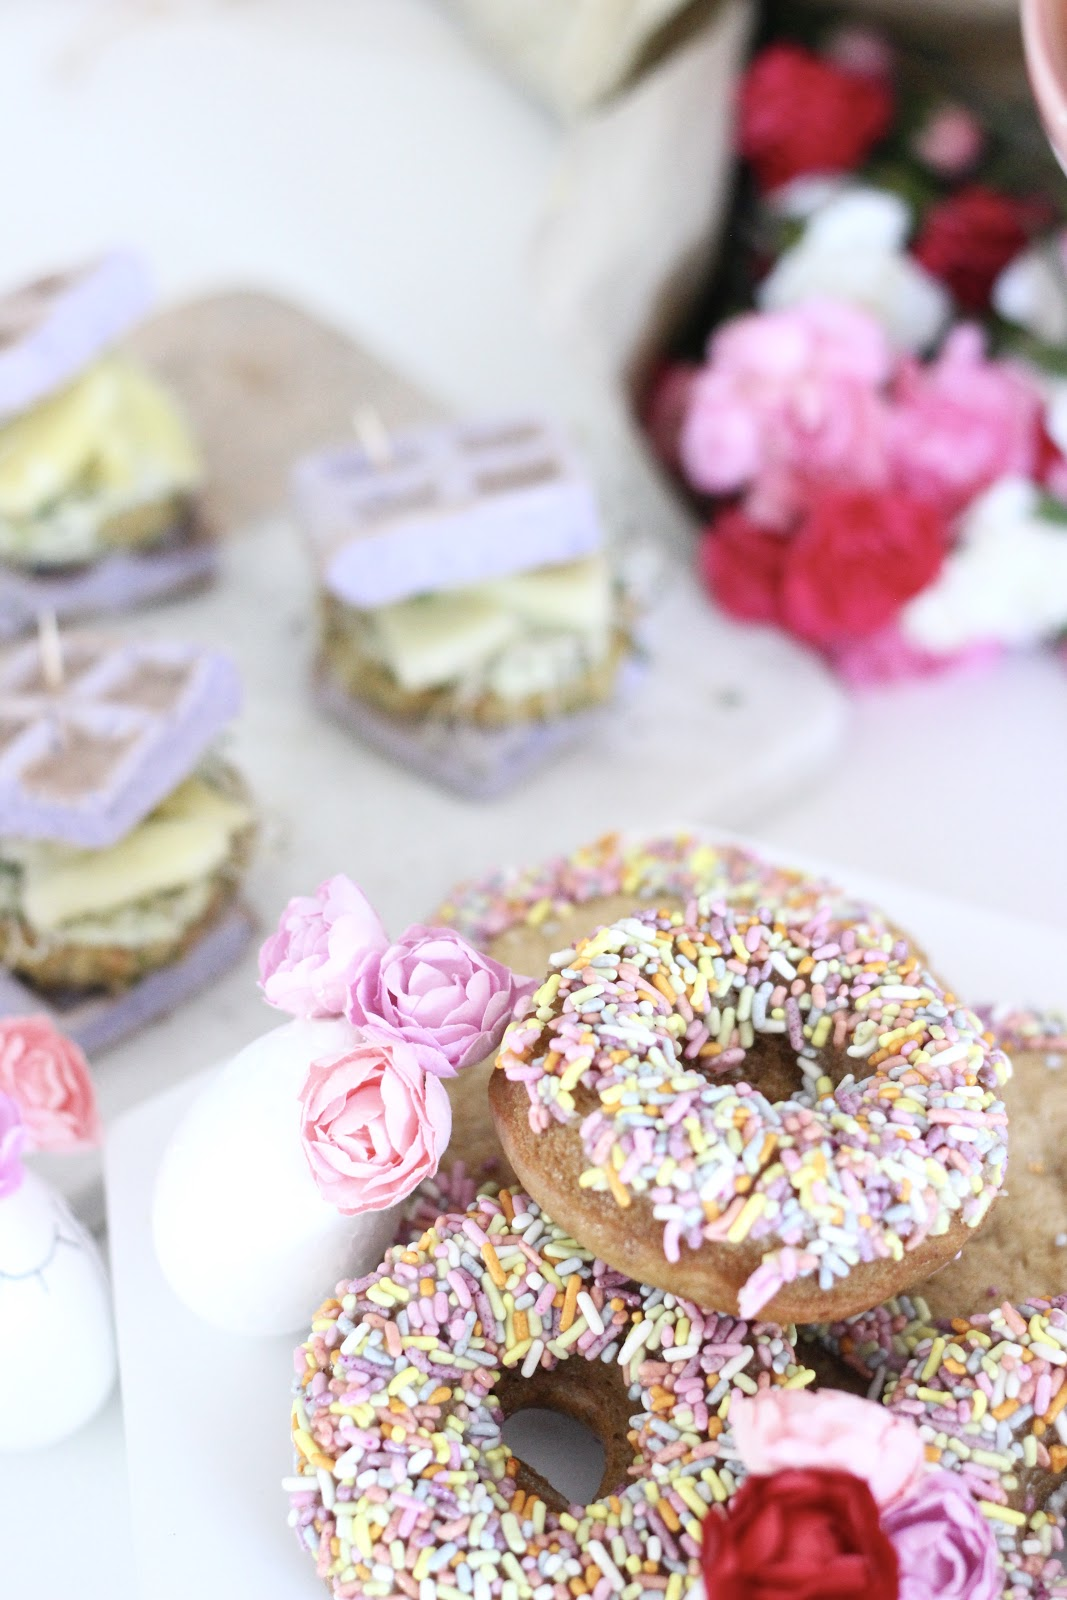 Kelly's Bake Shoppe Burlington ON, gluten free, vegan vanilla sprinkle donut / Pastels & Pastries